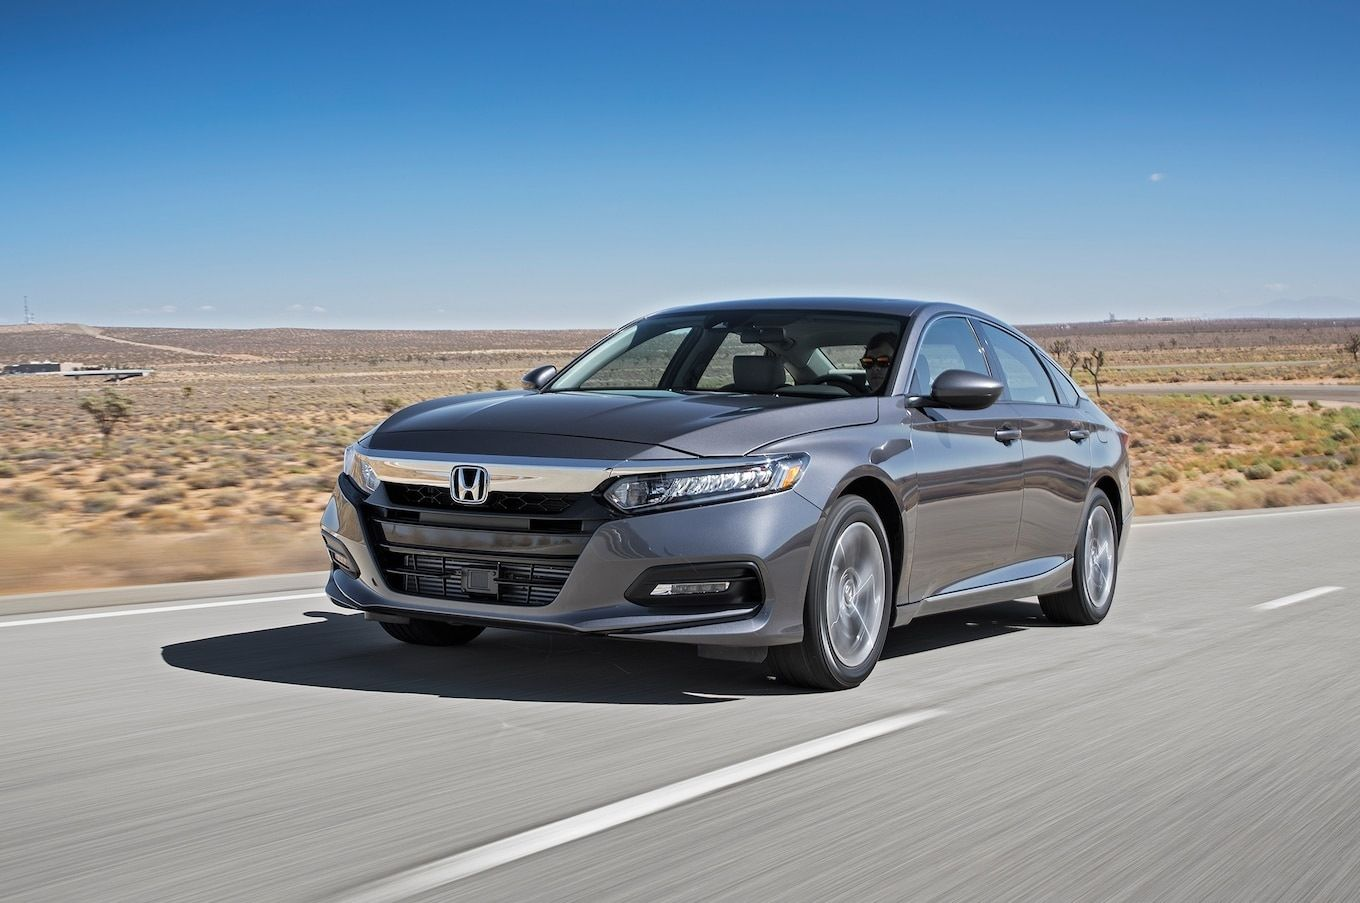 Nouveau 2020 Honda Accord 2.0 T Honda accord, 2018 honda